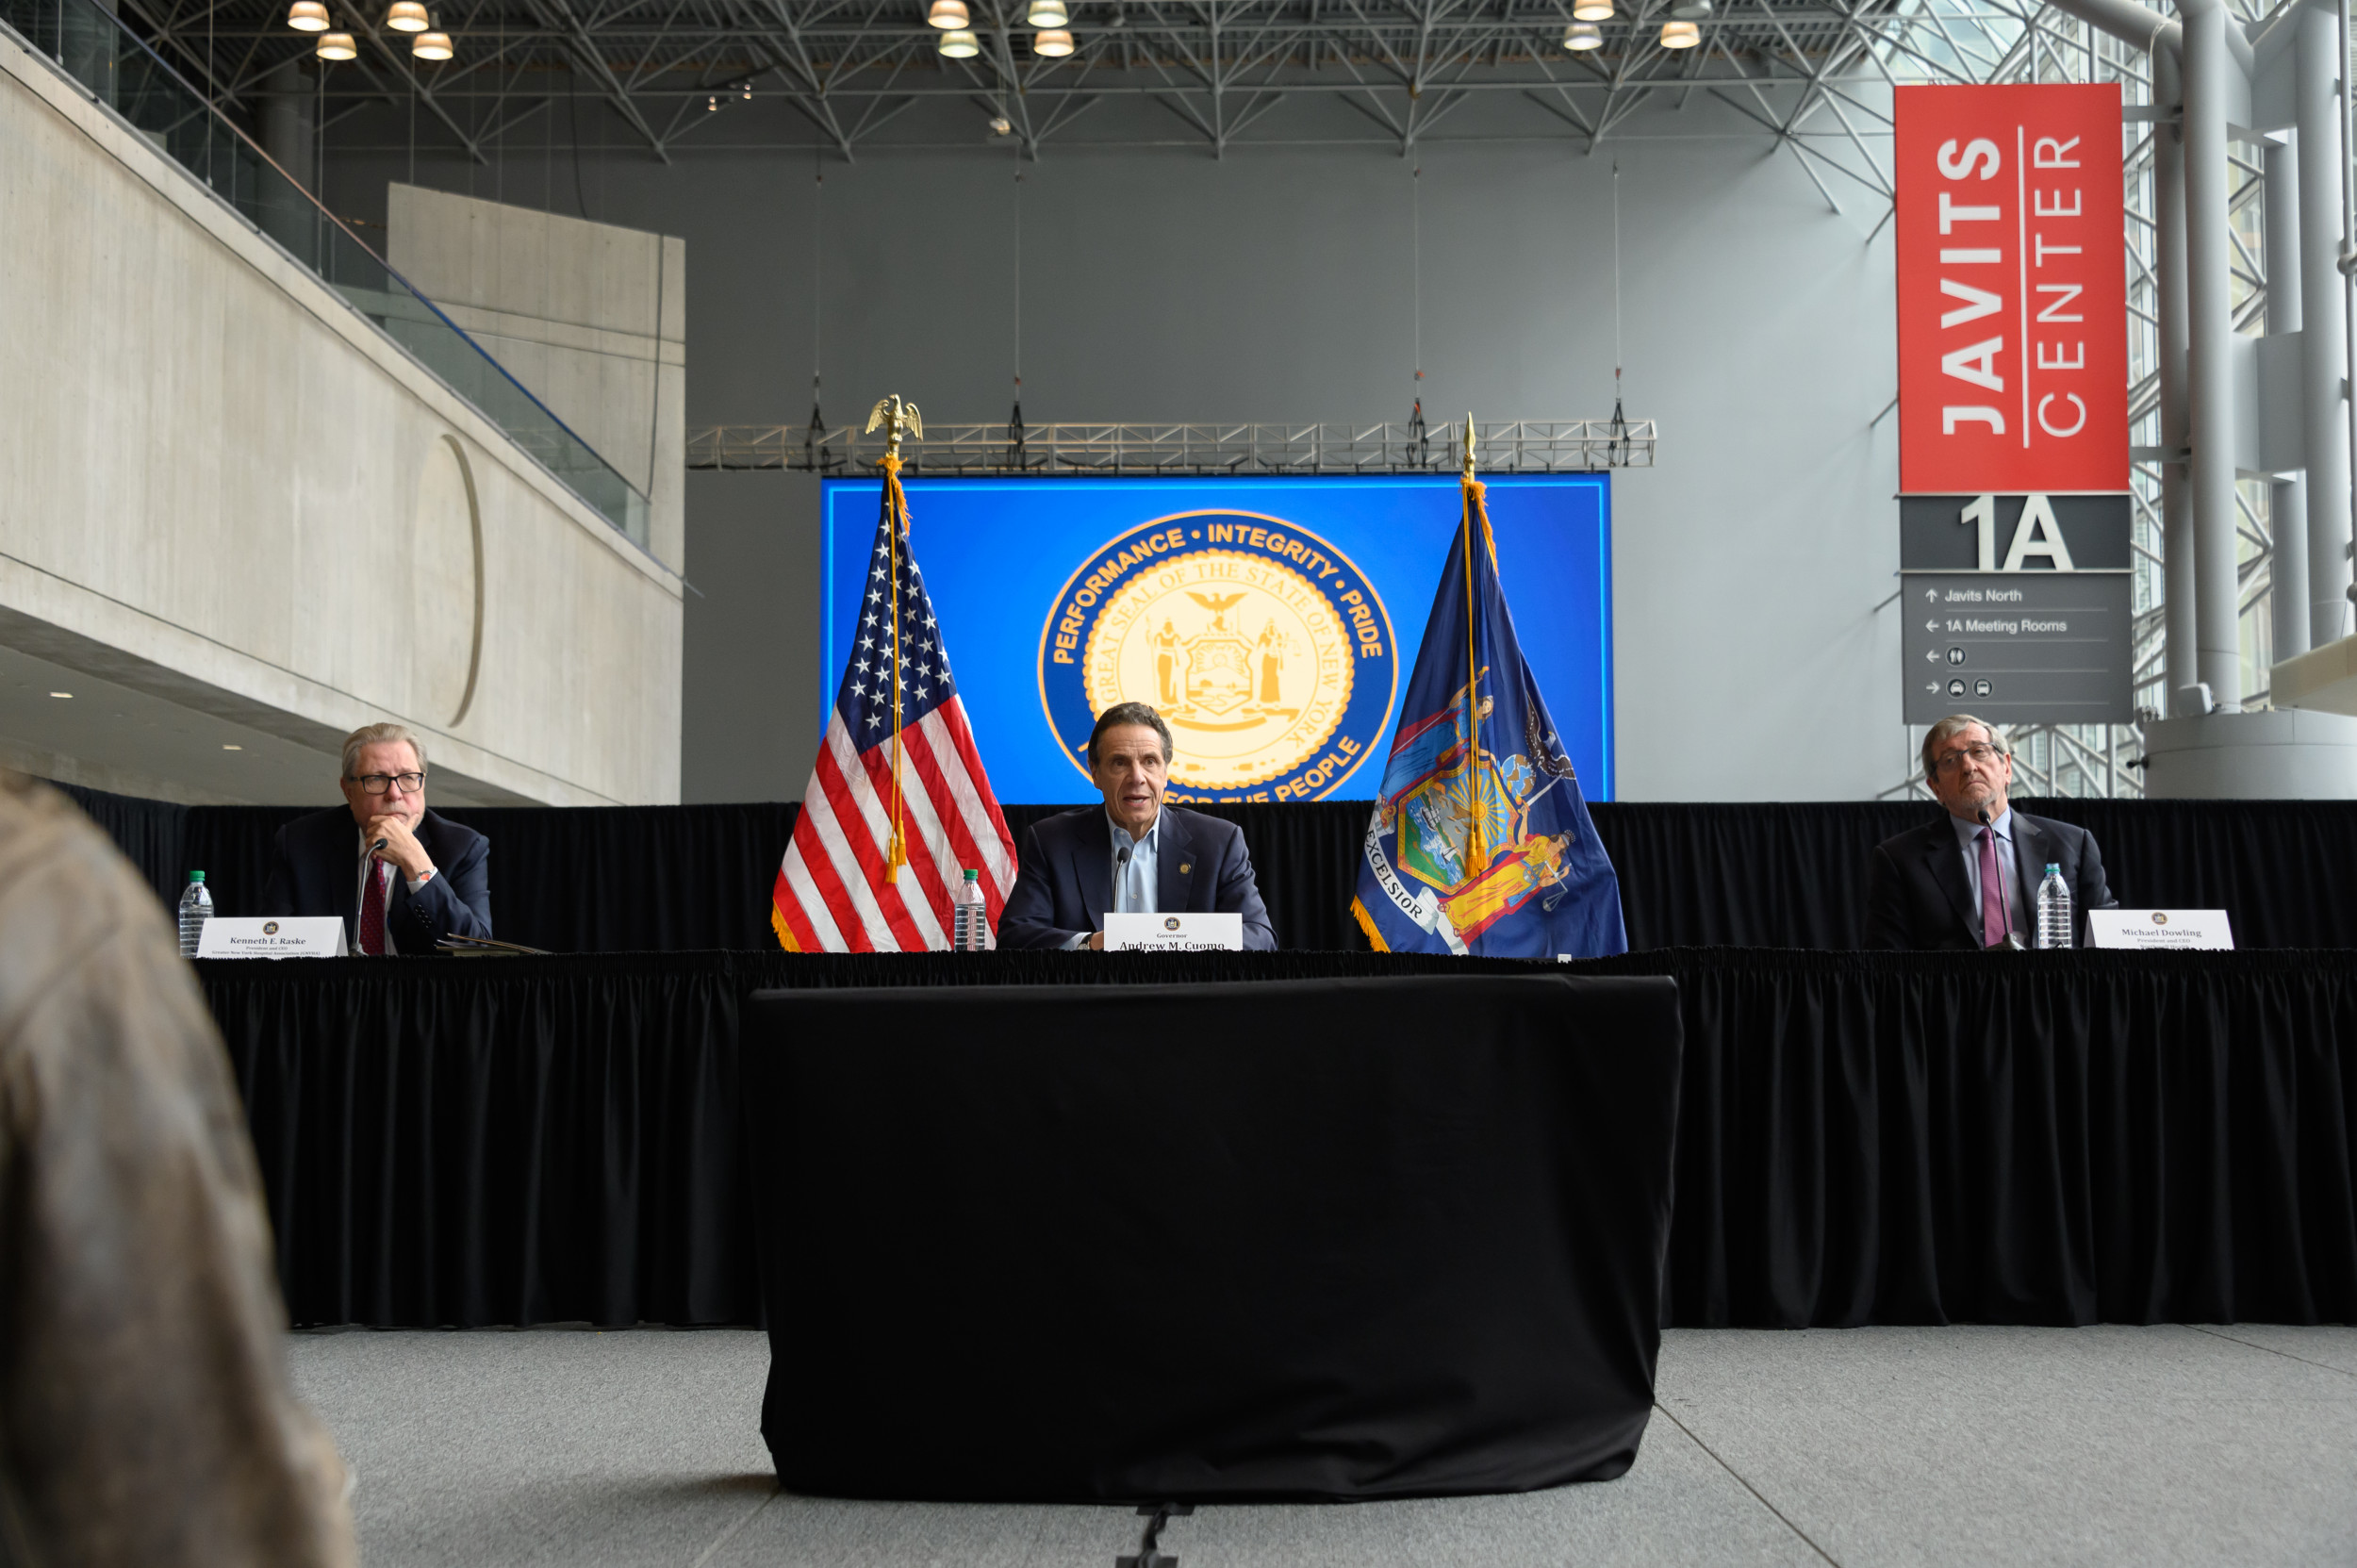 What is Convalescent Plasma? Governor Cuomo Talks About Possible Medical Treatment Ahead of COVID-19 Vaccine